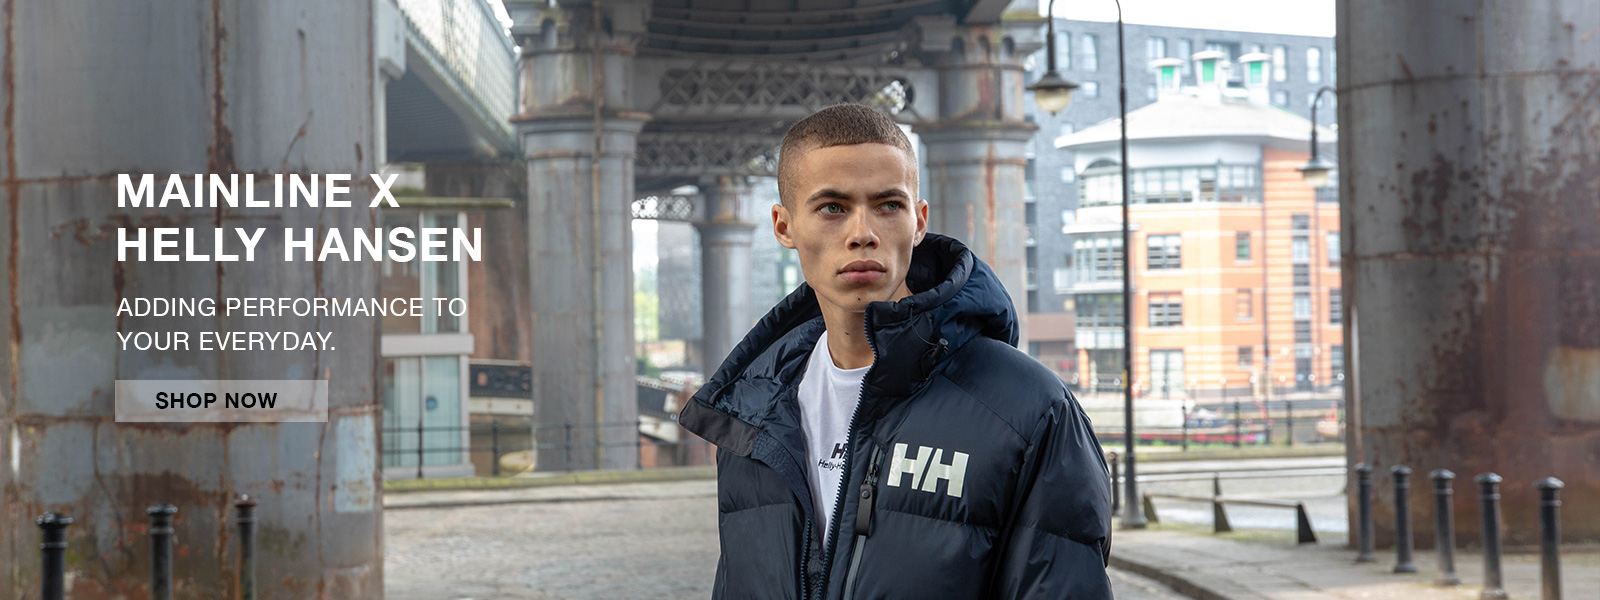 Mainline x Helly Hansen - Adding Performance to your Everyday